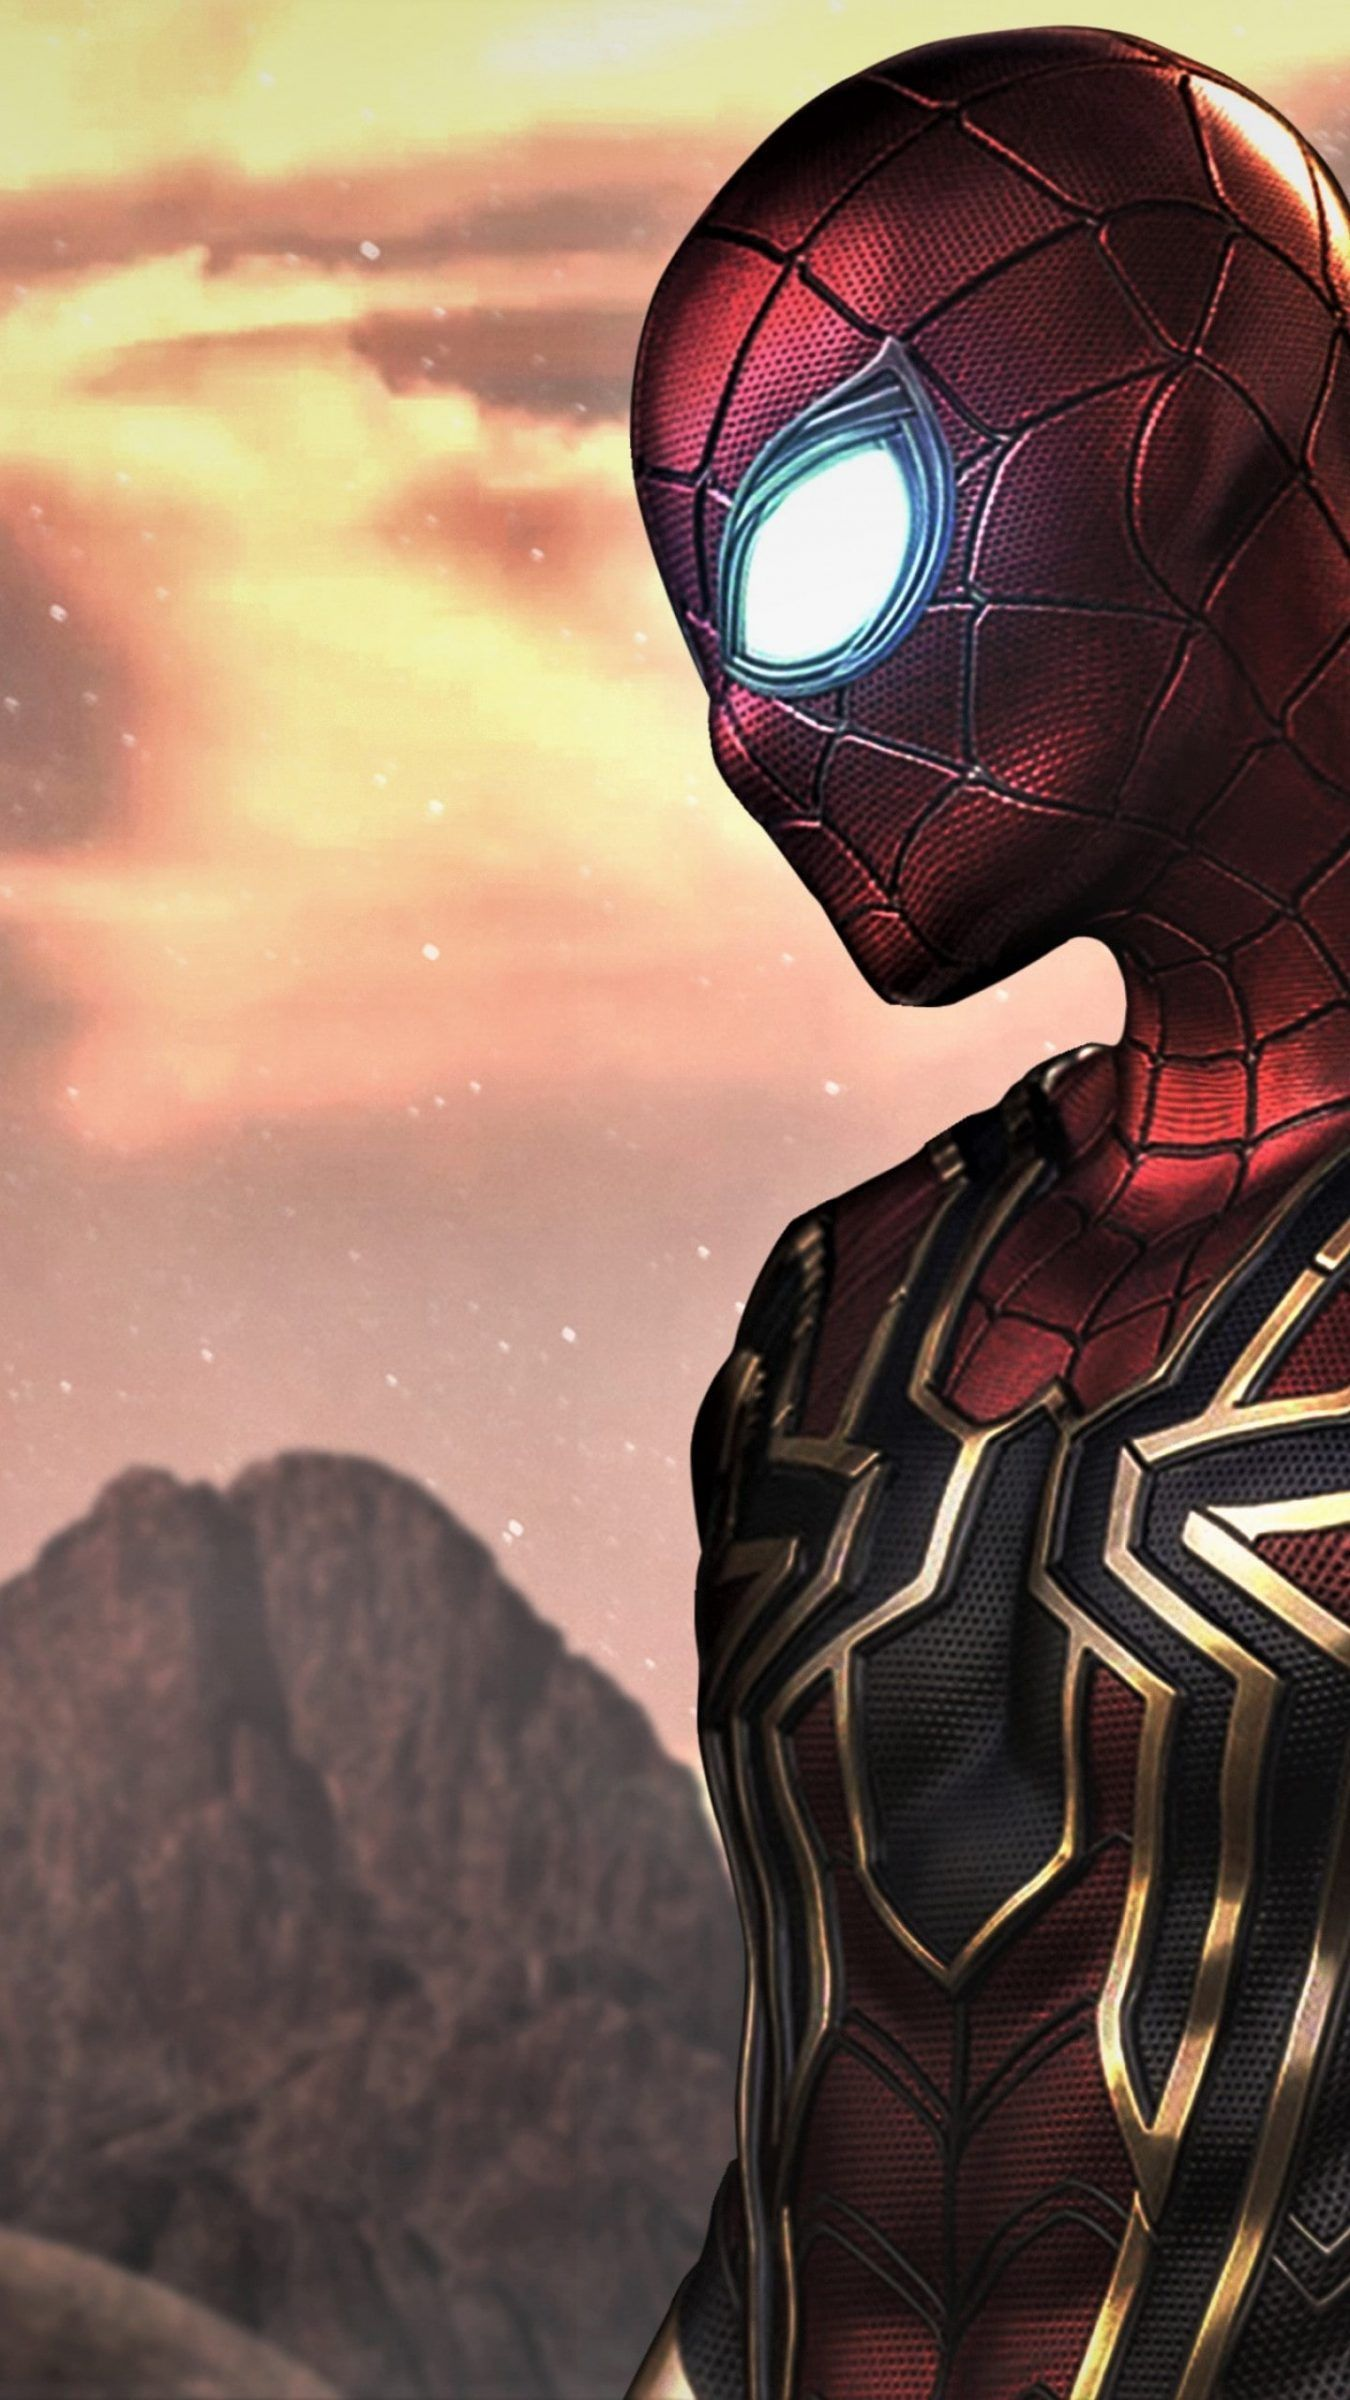 Pin By Agbenugocho On Super Heroes Iron Man Wallpaper Superhero Wallpaper Marvel Wallpaper